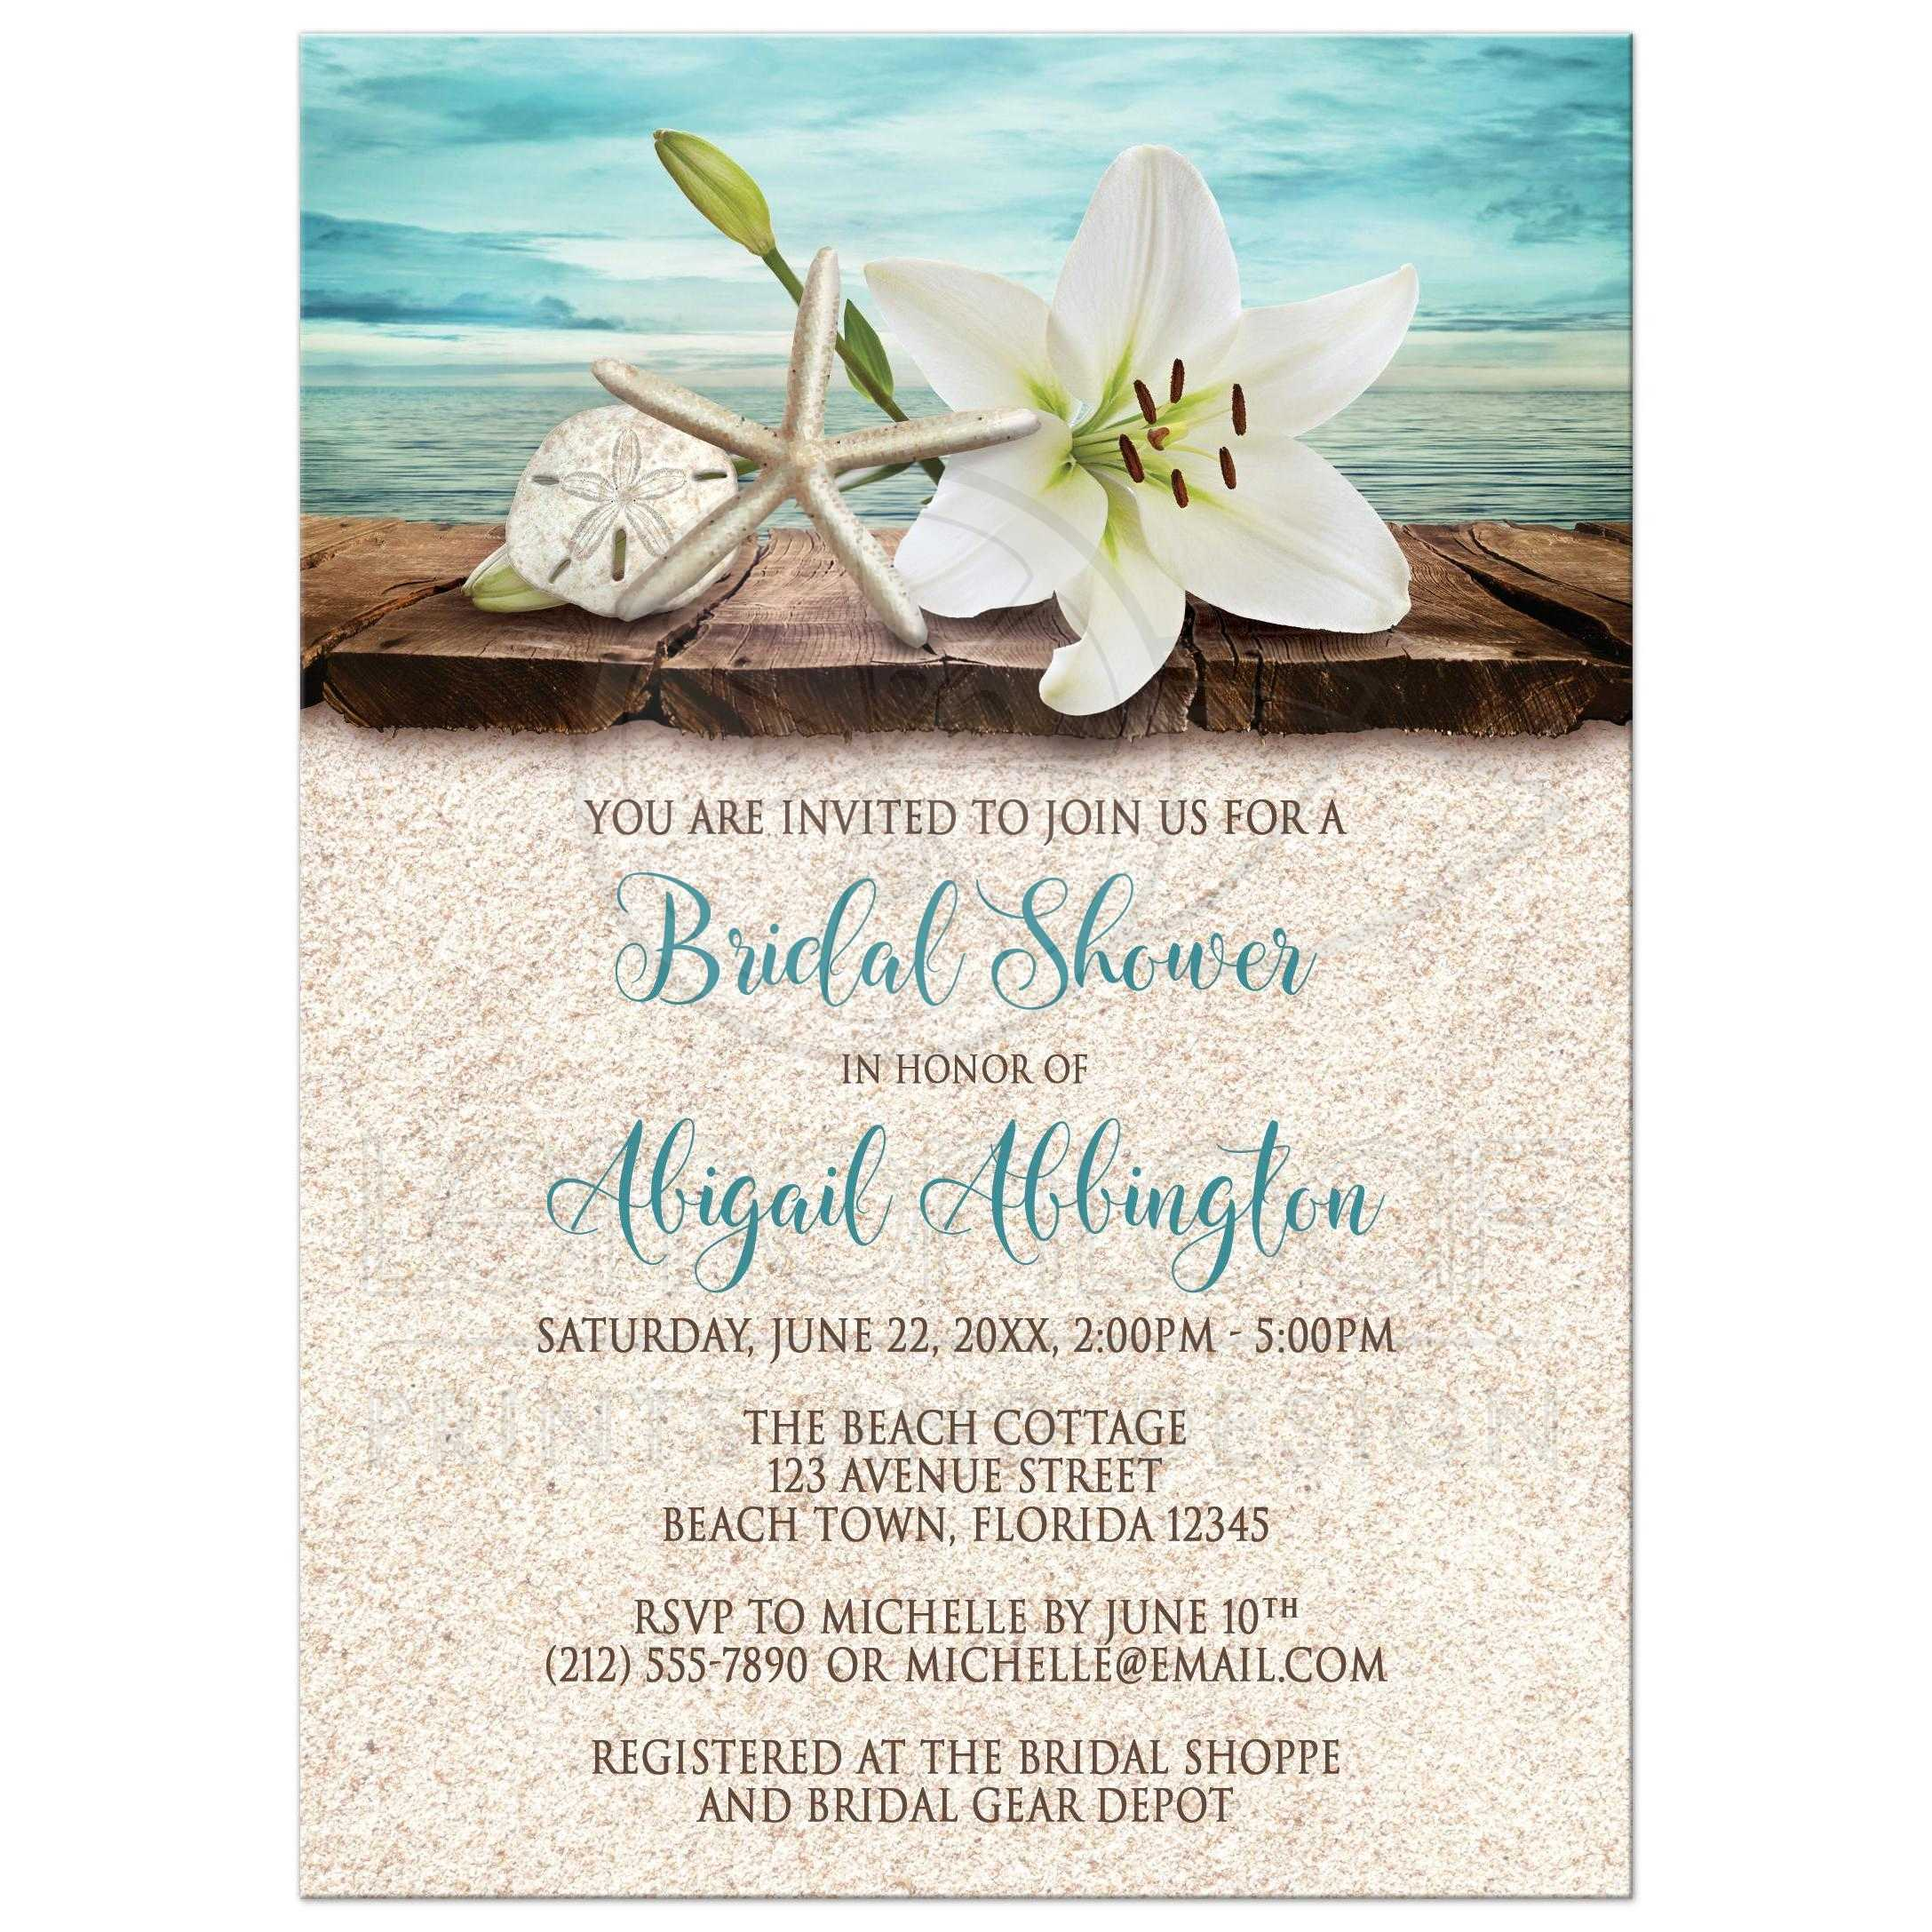 Bridal shower invitations beach lily seashells and sand filmwisefo